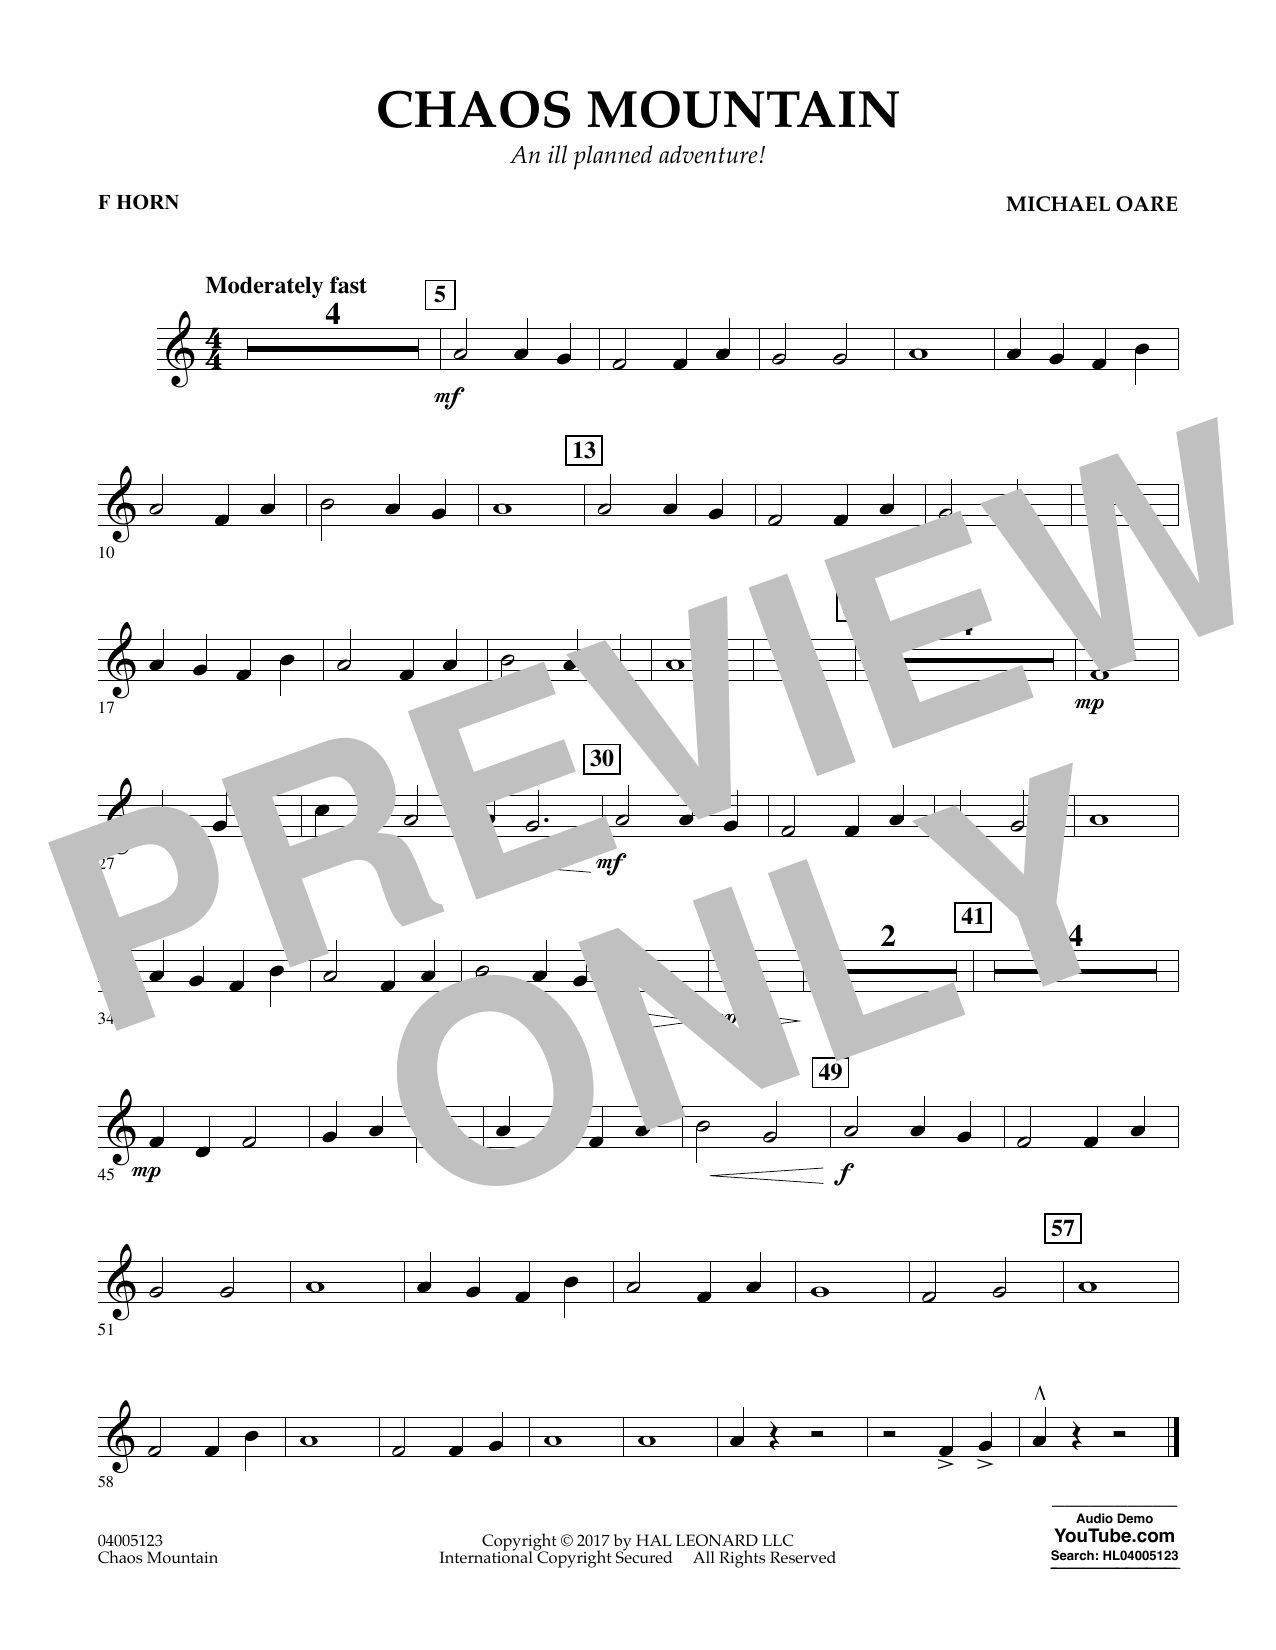 Michael Oare Chaos Mountain - F Horn sheet music notes and chords. Download Printable PDF.